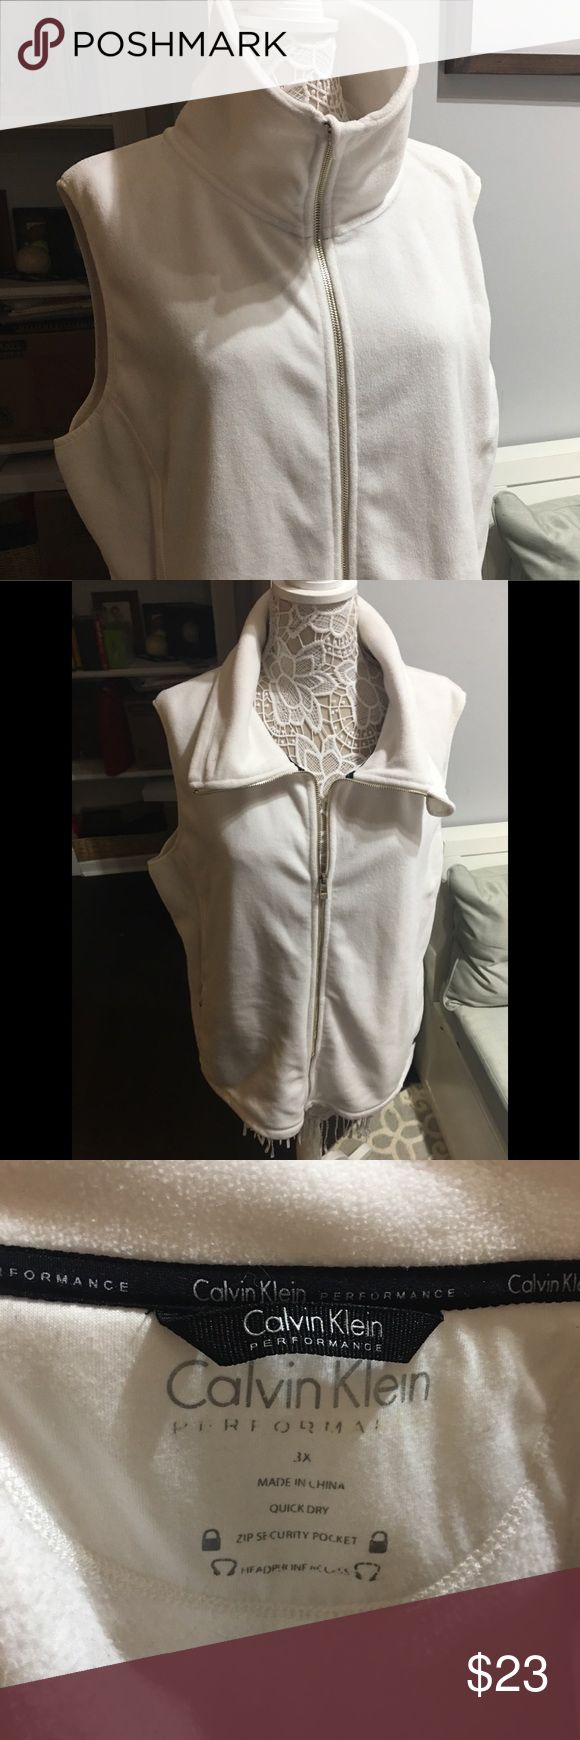 CALVIN KLEIN-  Fleece cream vest :Athleisure Excellent used condition- super soft & goes with everything! no flaws. Soft & warm with darting & branding detail. Size 3X Calvin Klein Jackets & Coats Vests